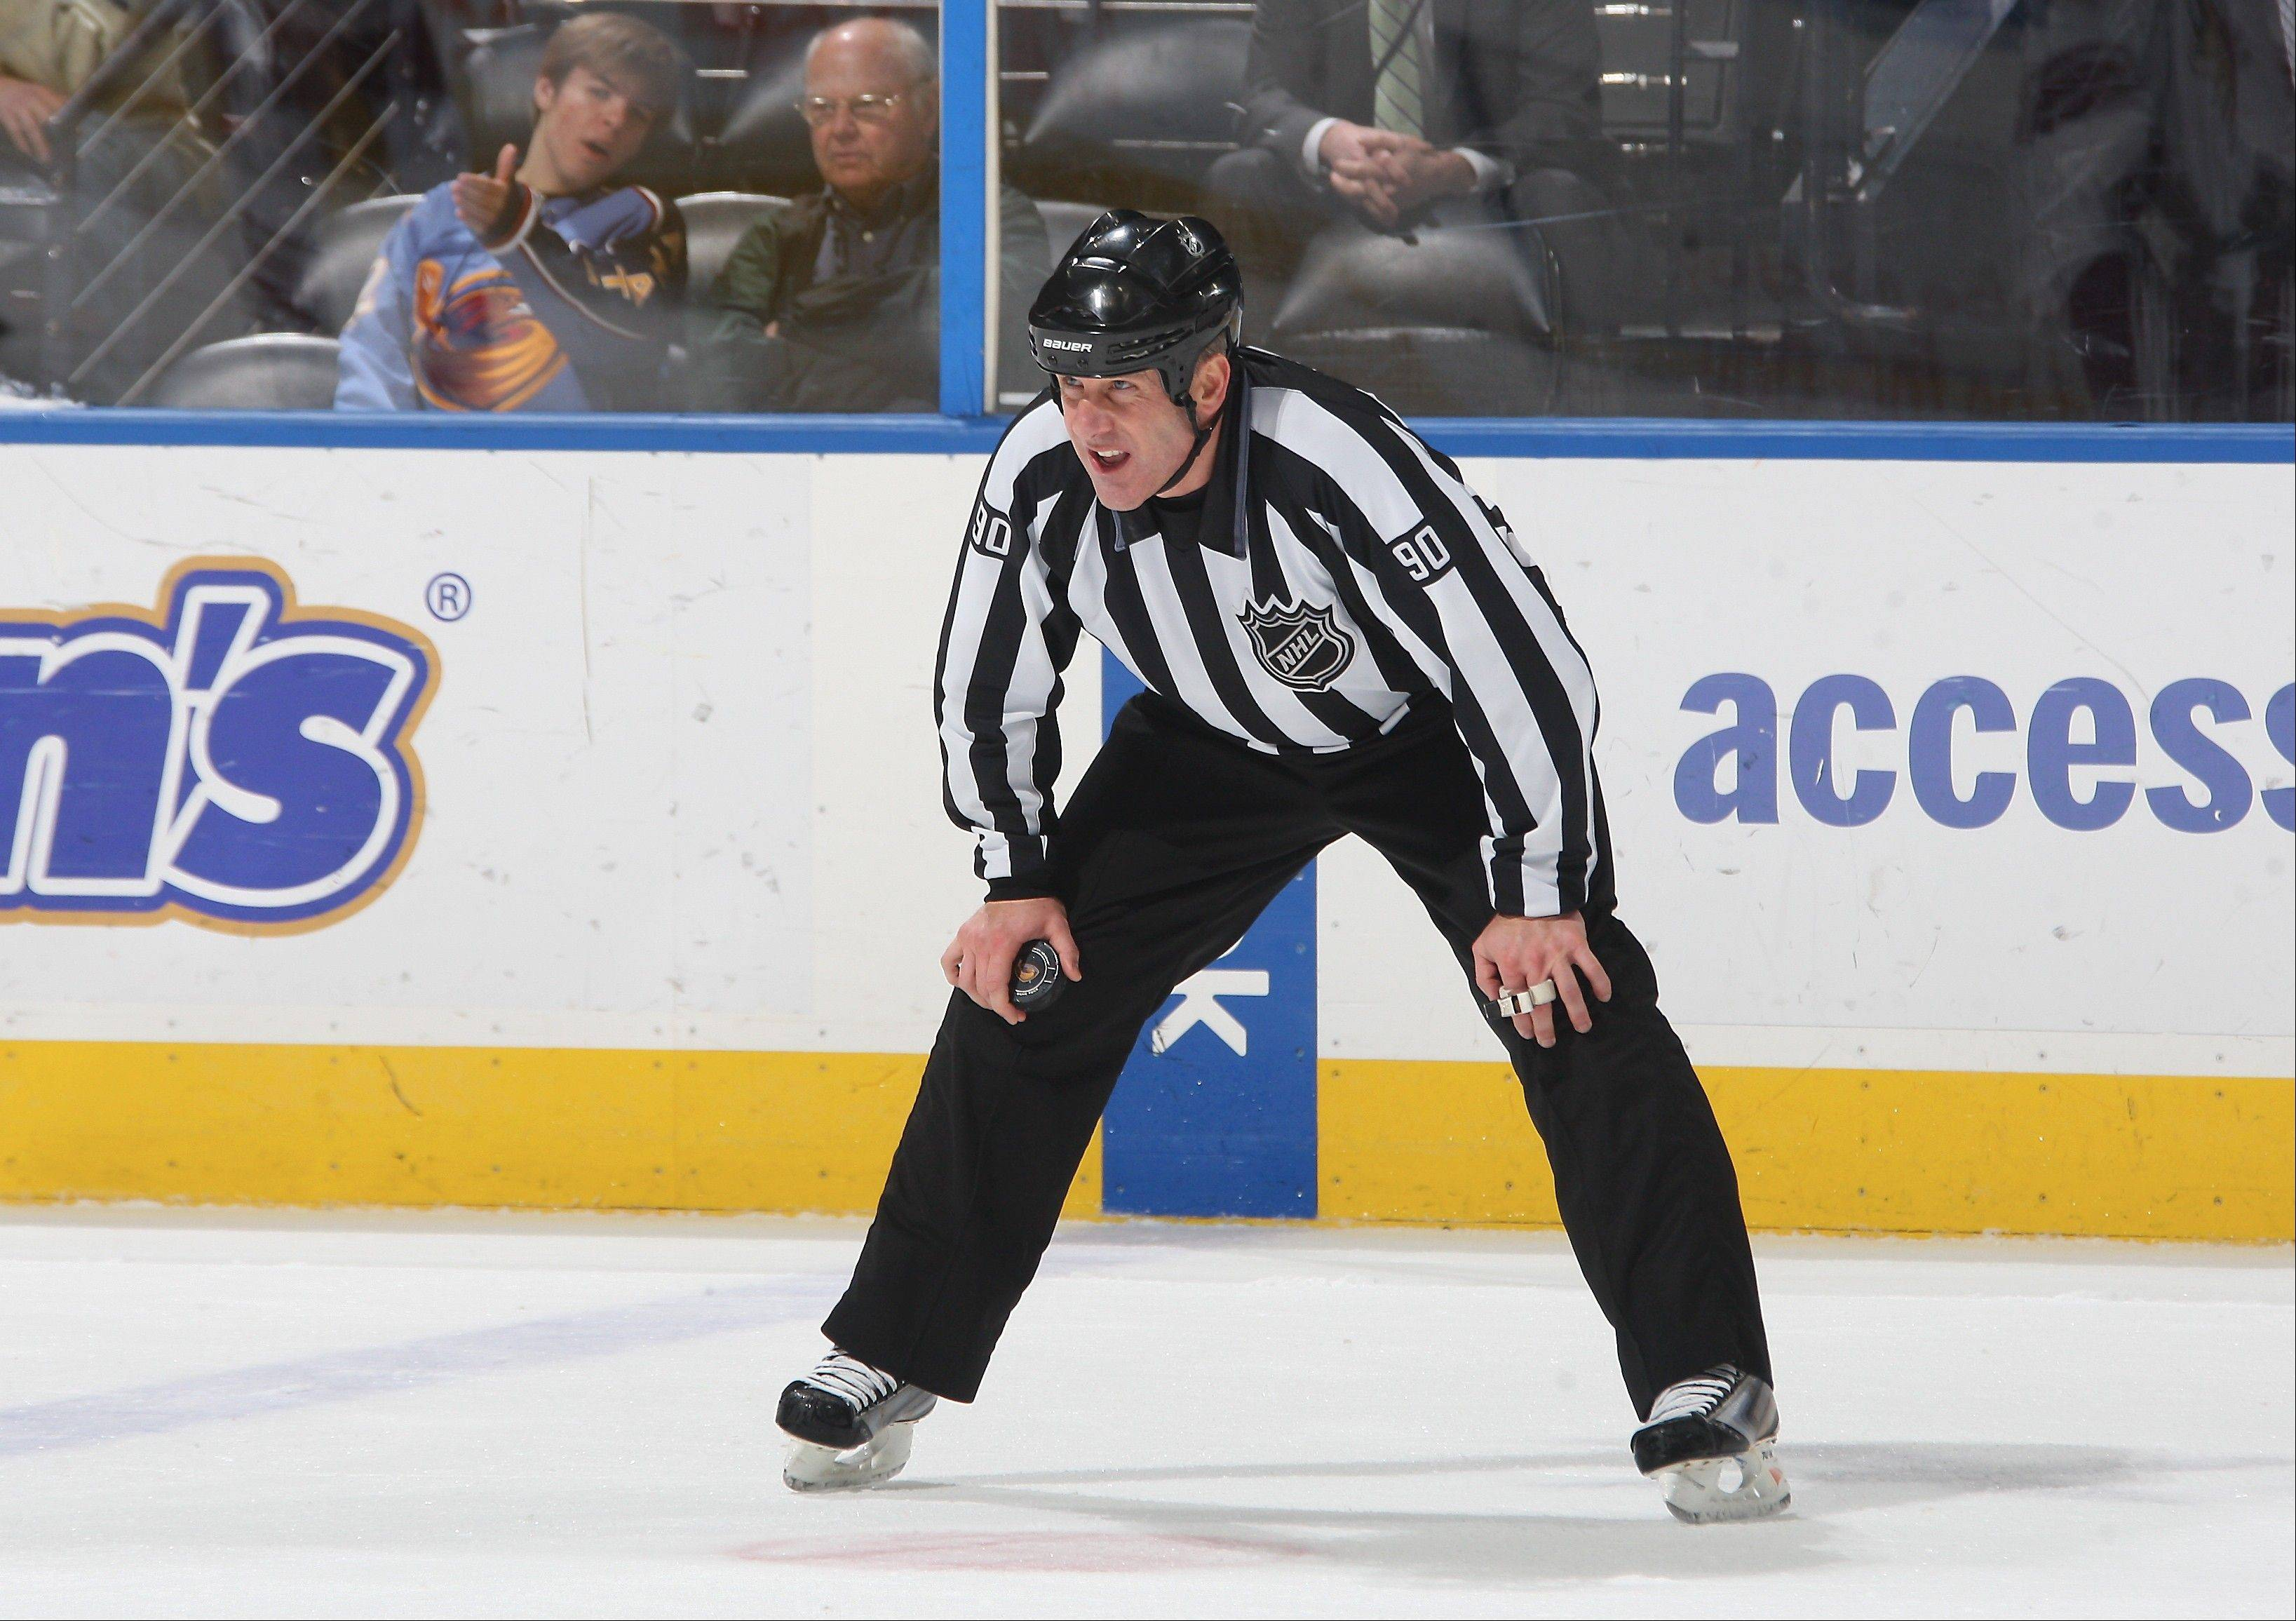 Algonquin resident and Palatine native Andy McElman is thrilled about his upcoming participation in Olympic Hockey in the Sochi Games as a linesman.